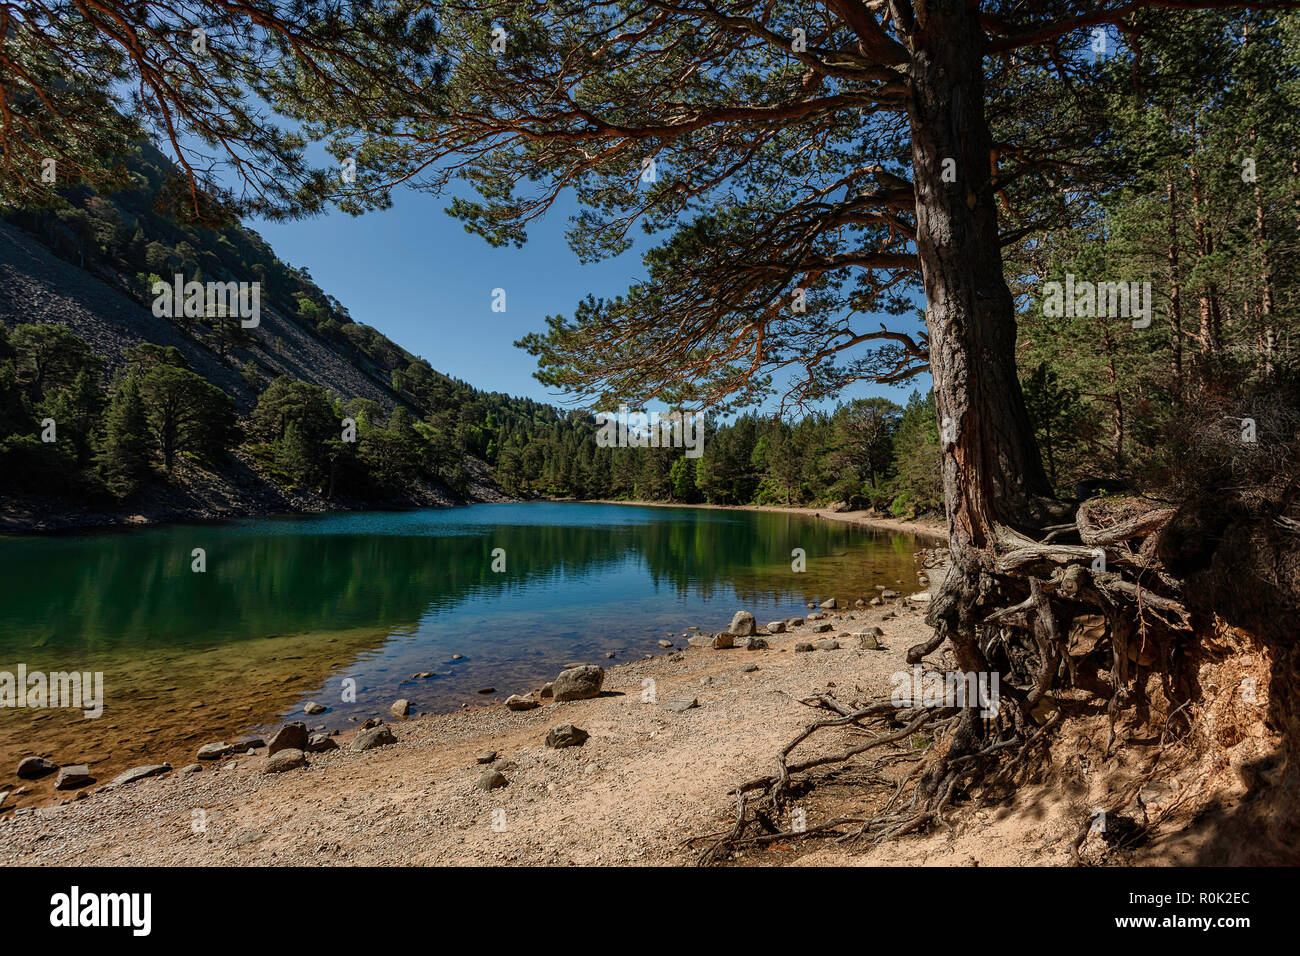 The Green Lochan (An Lochan Uaine). A small but incredibly beautiful Loch near Glenmore Lodge in Glenmore in The Cairngorms. Stock Photo